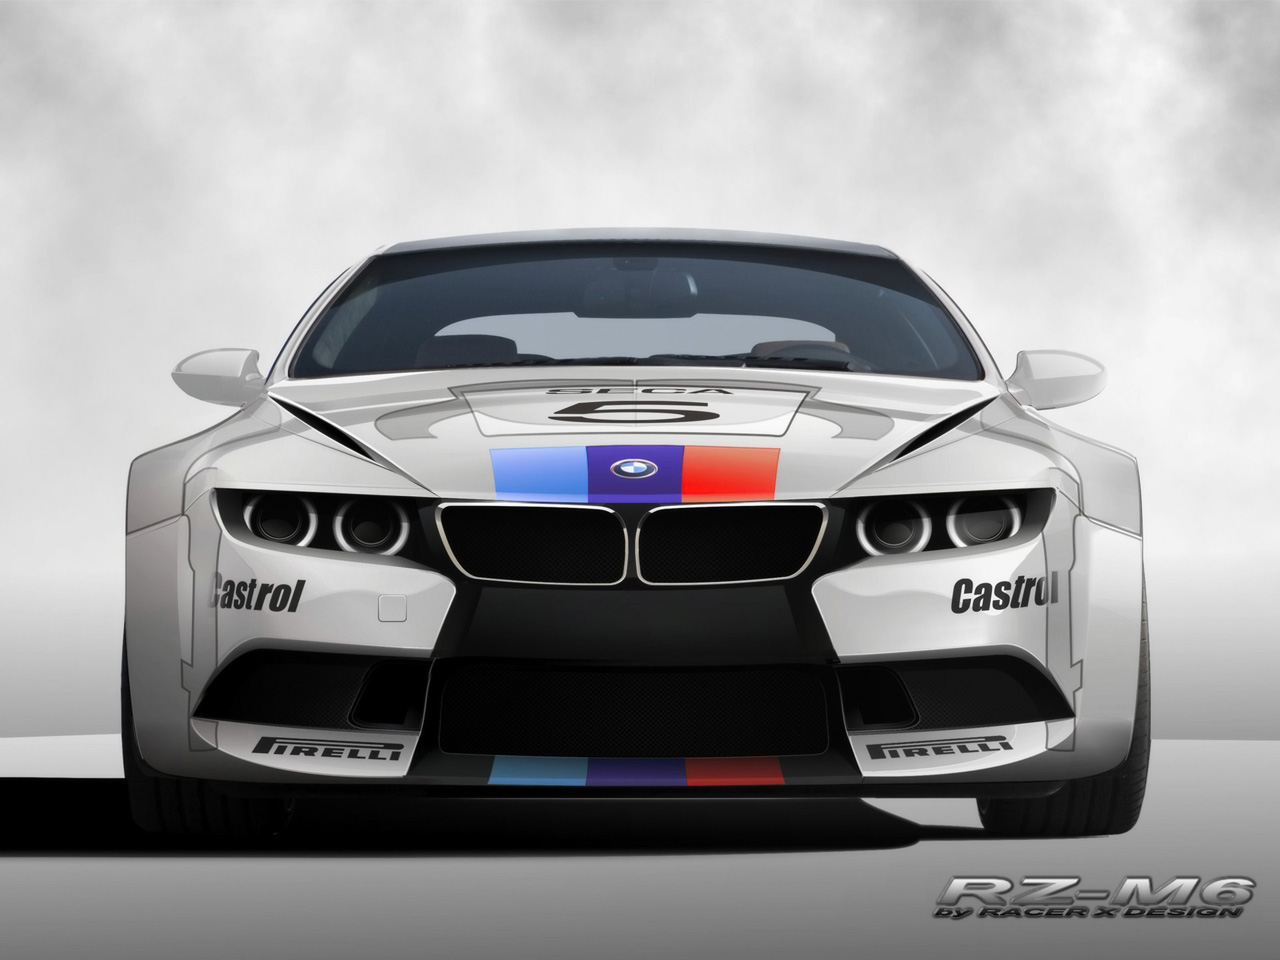 BMW Car Wallpapers HD Nice Wallpapers 1280x960